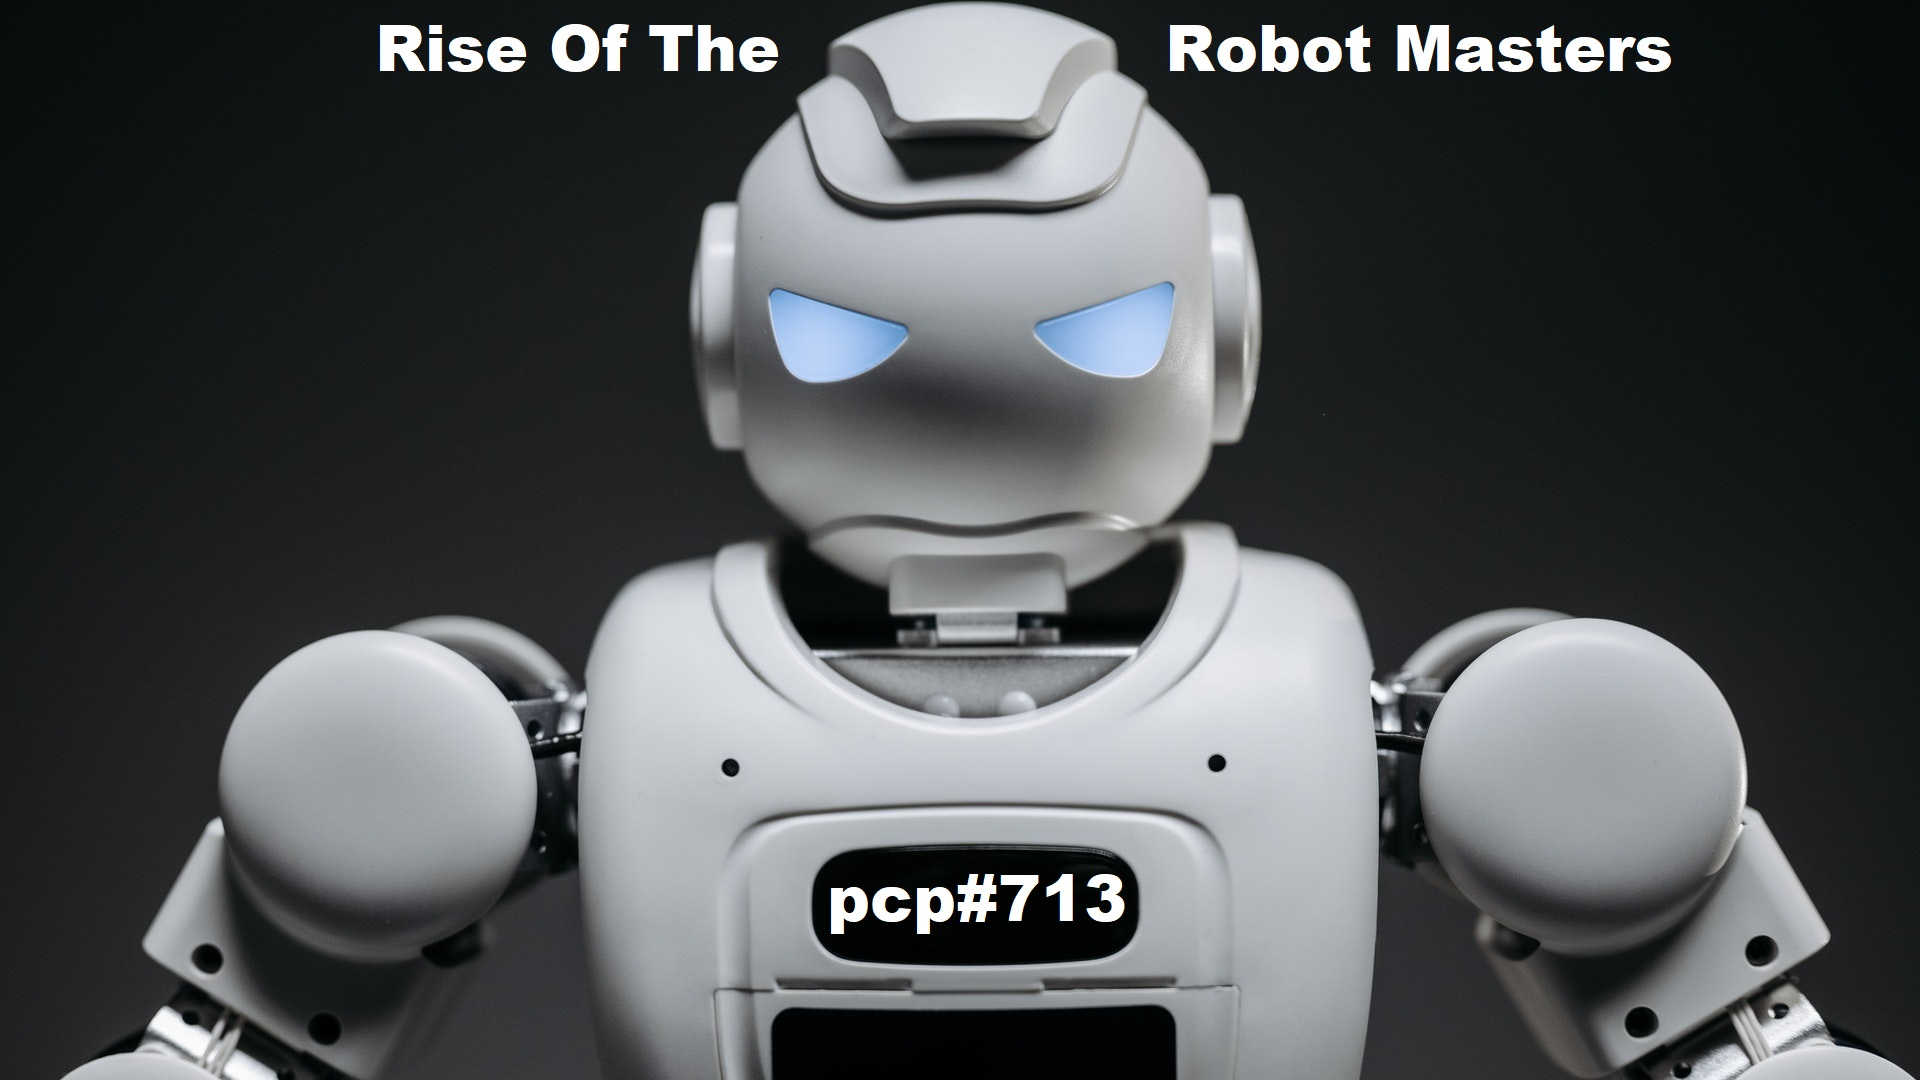 PCP#713... Rise Of The Robot Masters.....